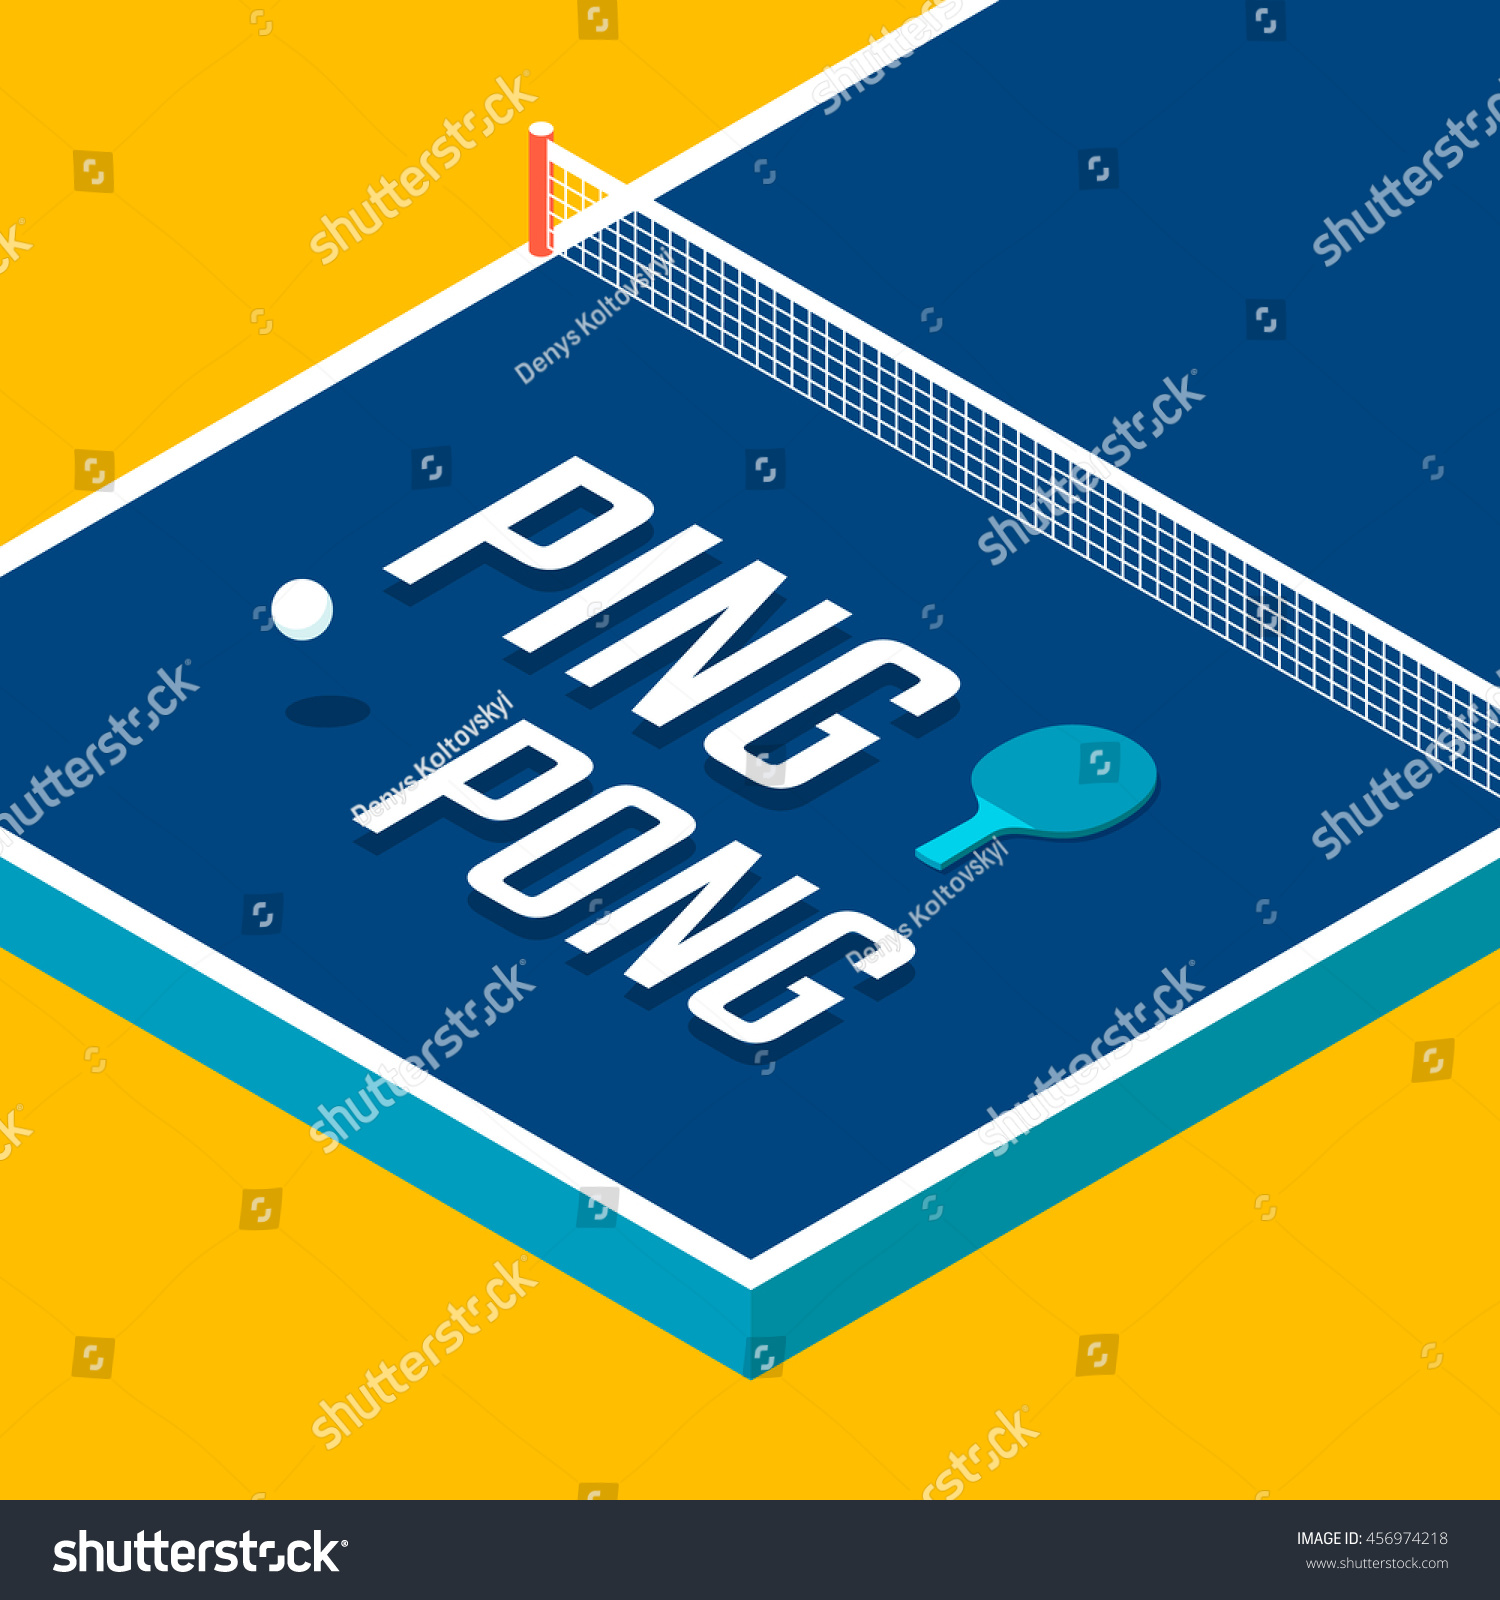 Poster design vector - Ping Pong Poster Design Table Tennis Vector Illustration